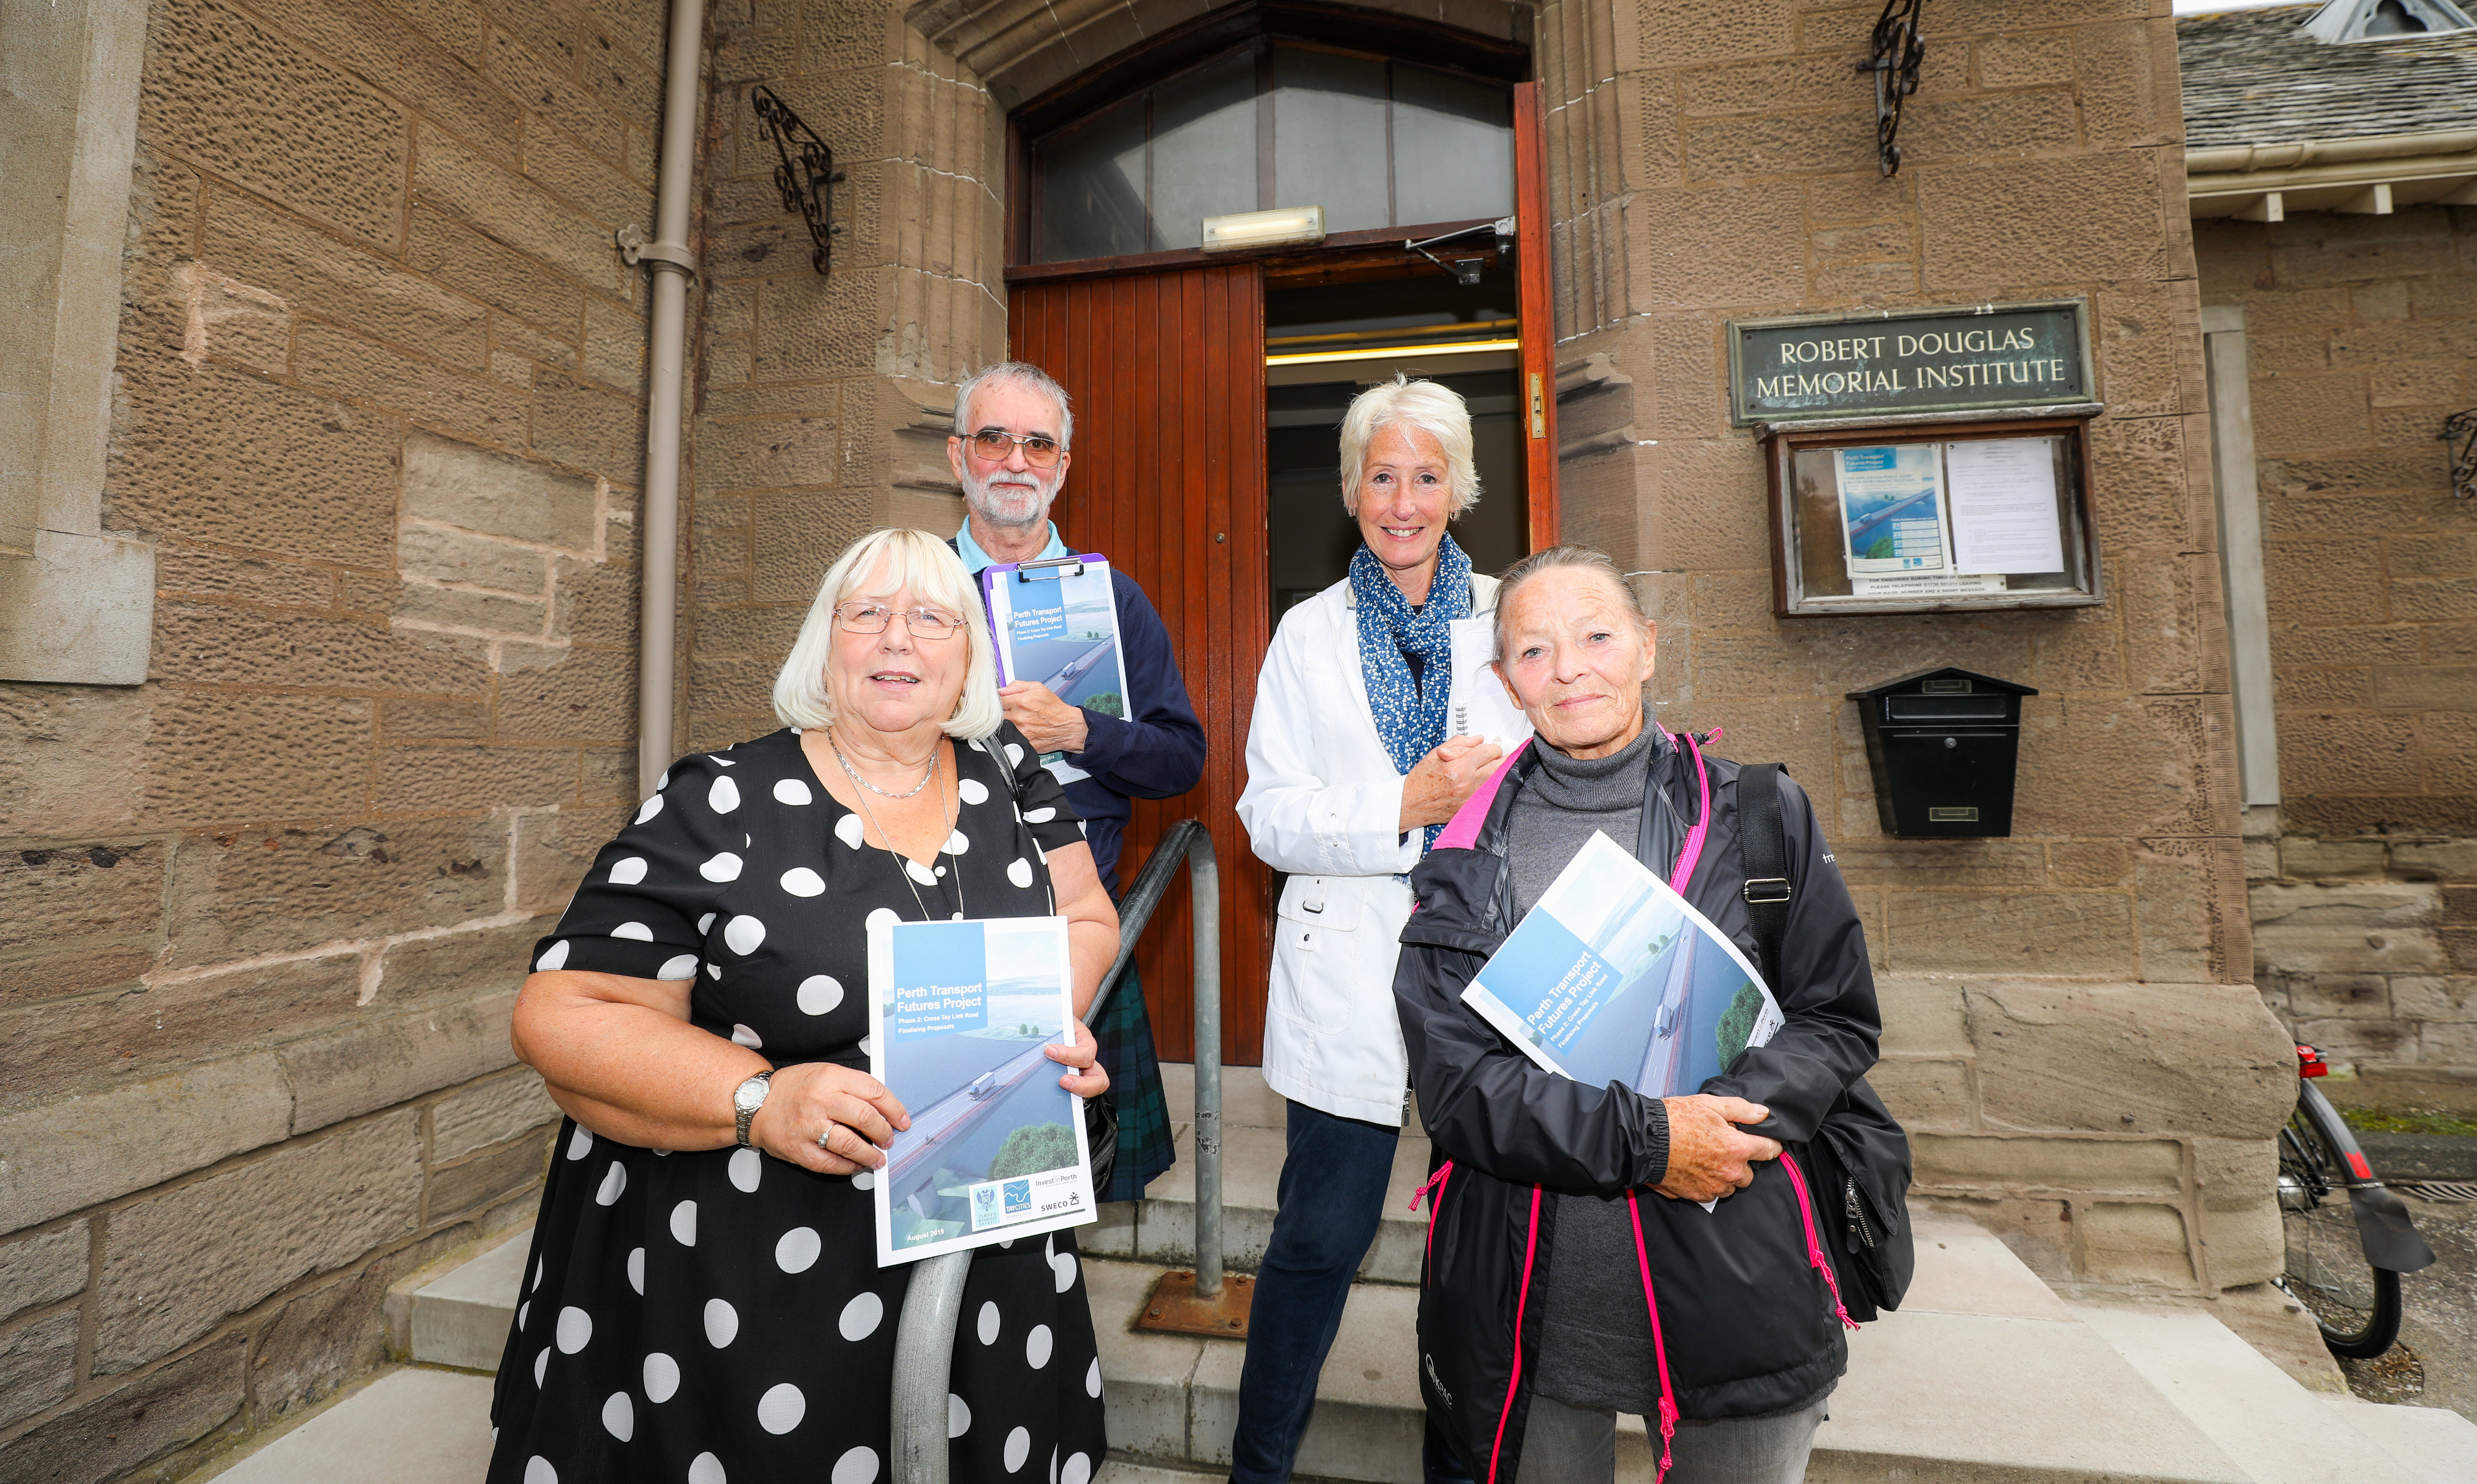 Scone Community Council members want to see the most positive outcome.